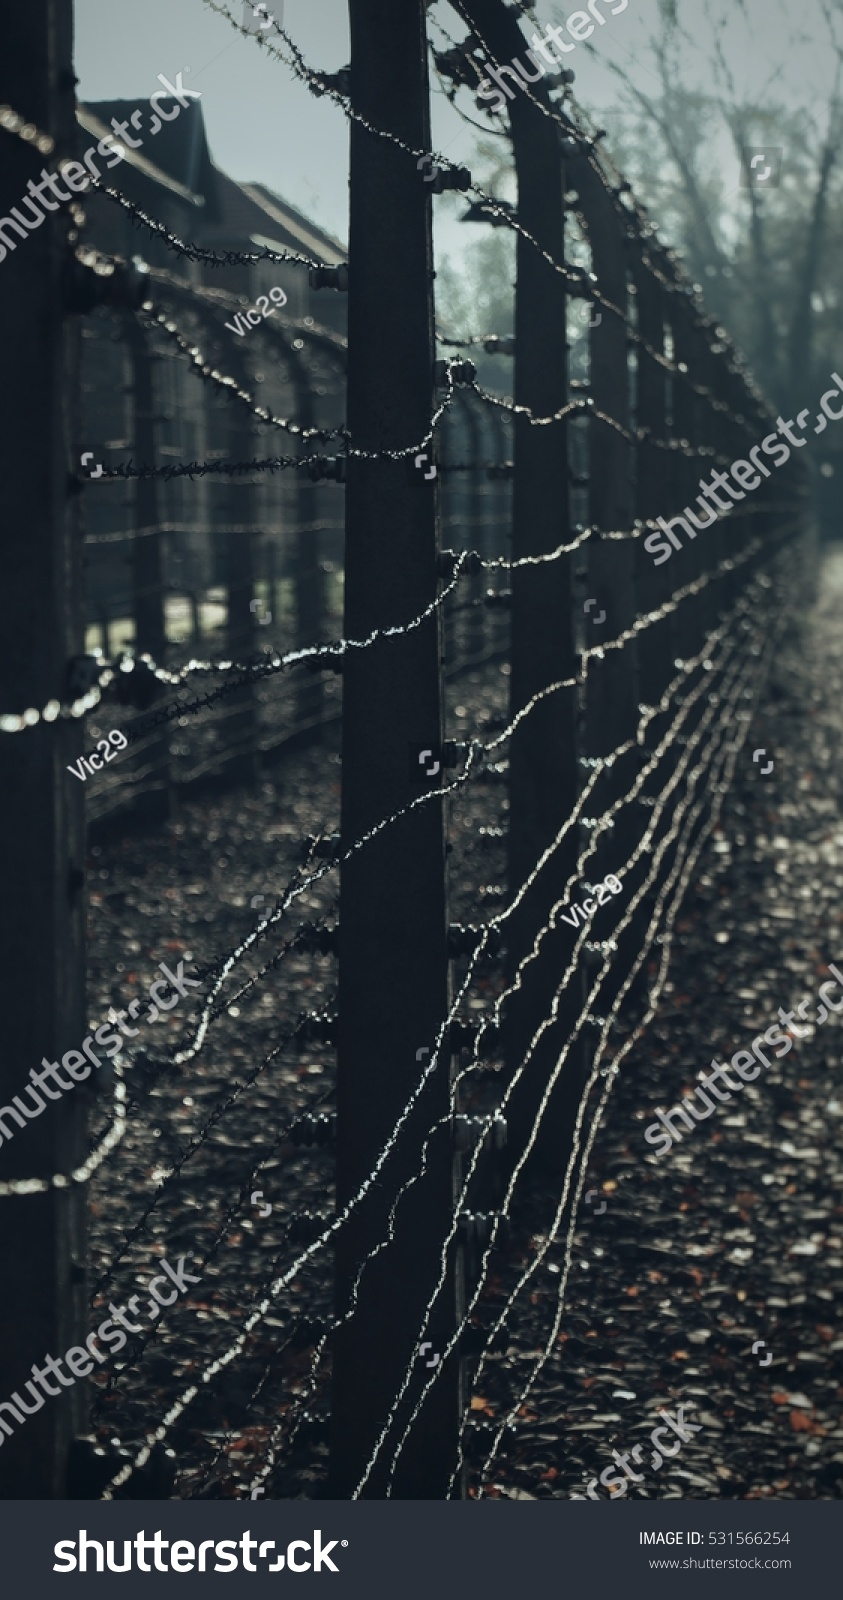 barbed wire fence concentration camp. Barbed Wire Fence Of A Concentration Camp